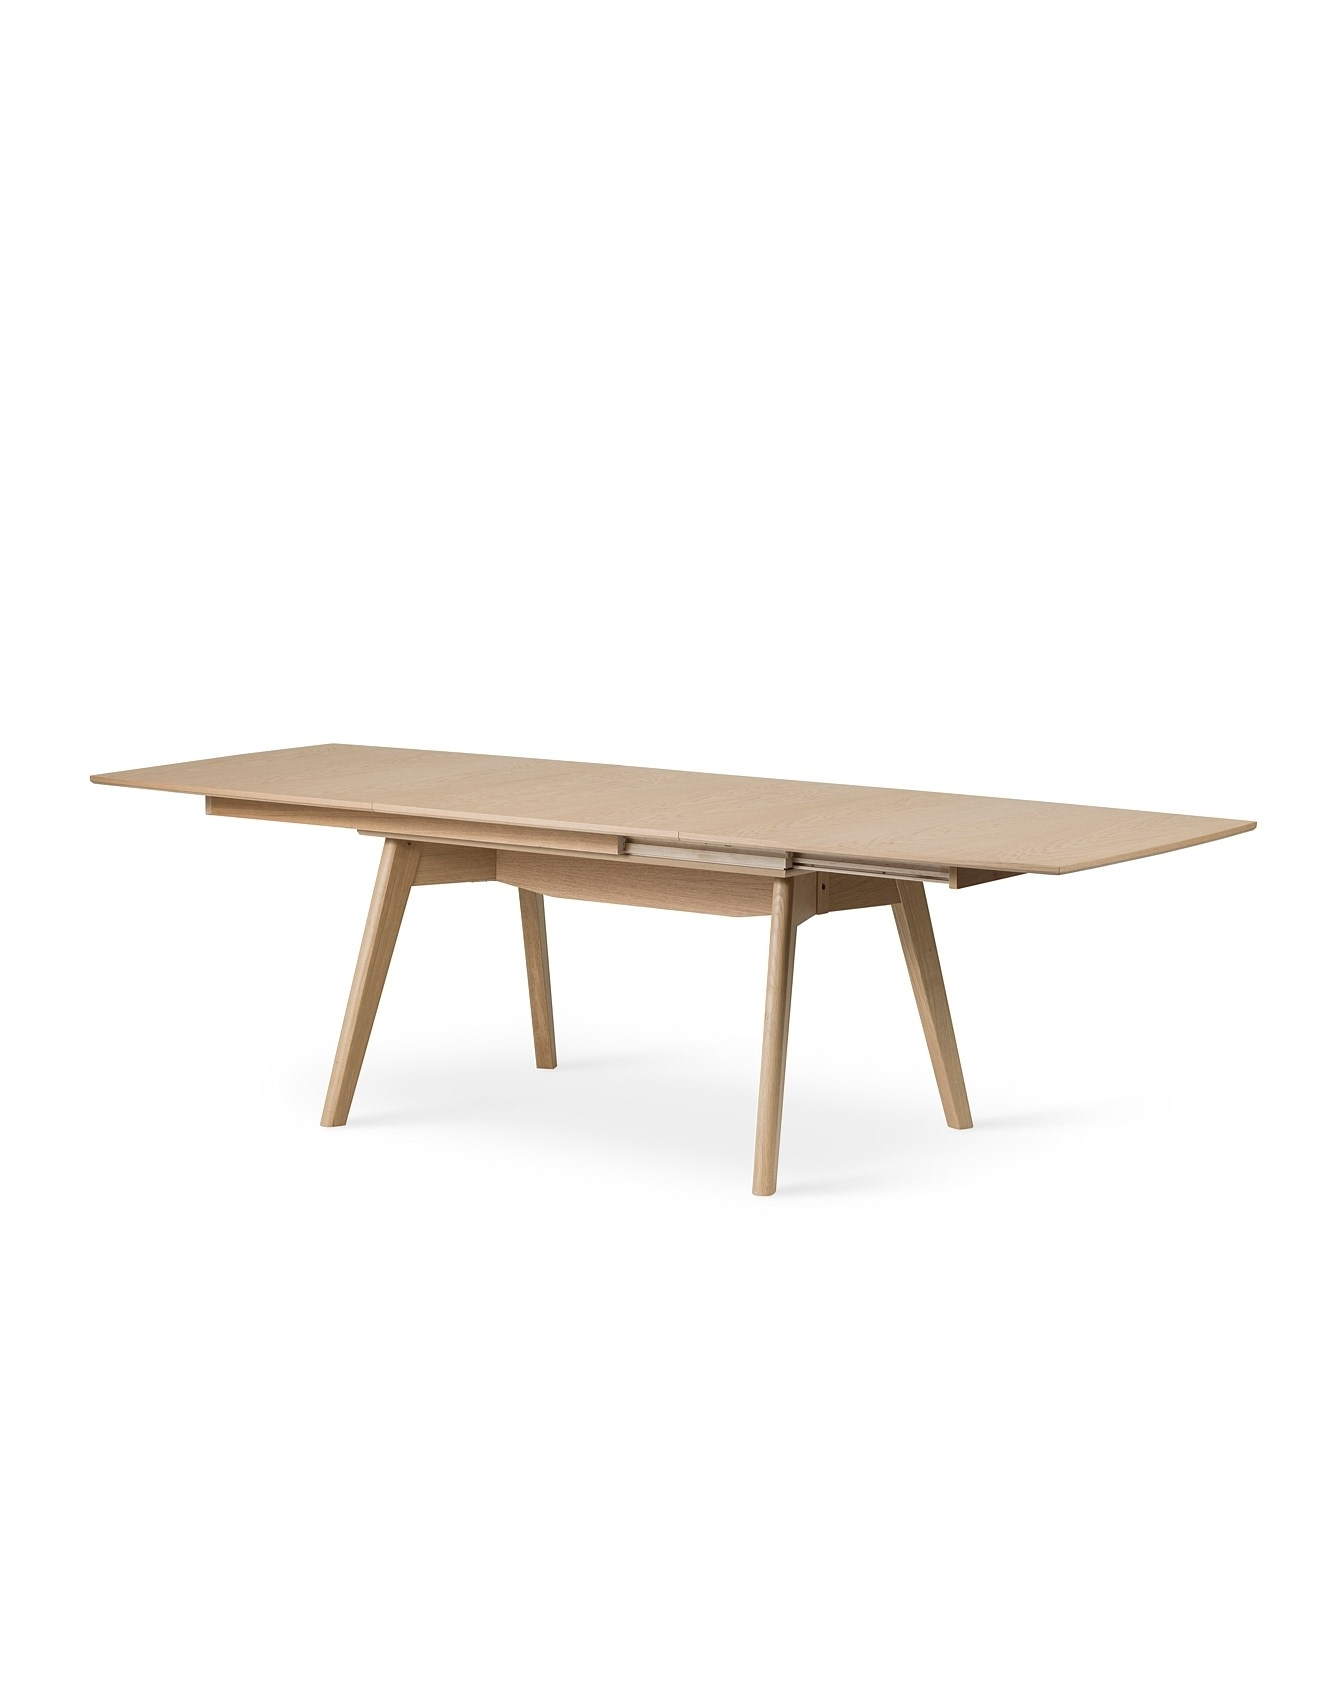 Well Known Toscana' Dining Table – 2 Leaf Extension & Solid Wood Legs Pertaining To Toscana Dining Tables (View 25 of 25)